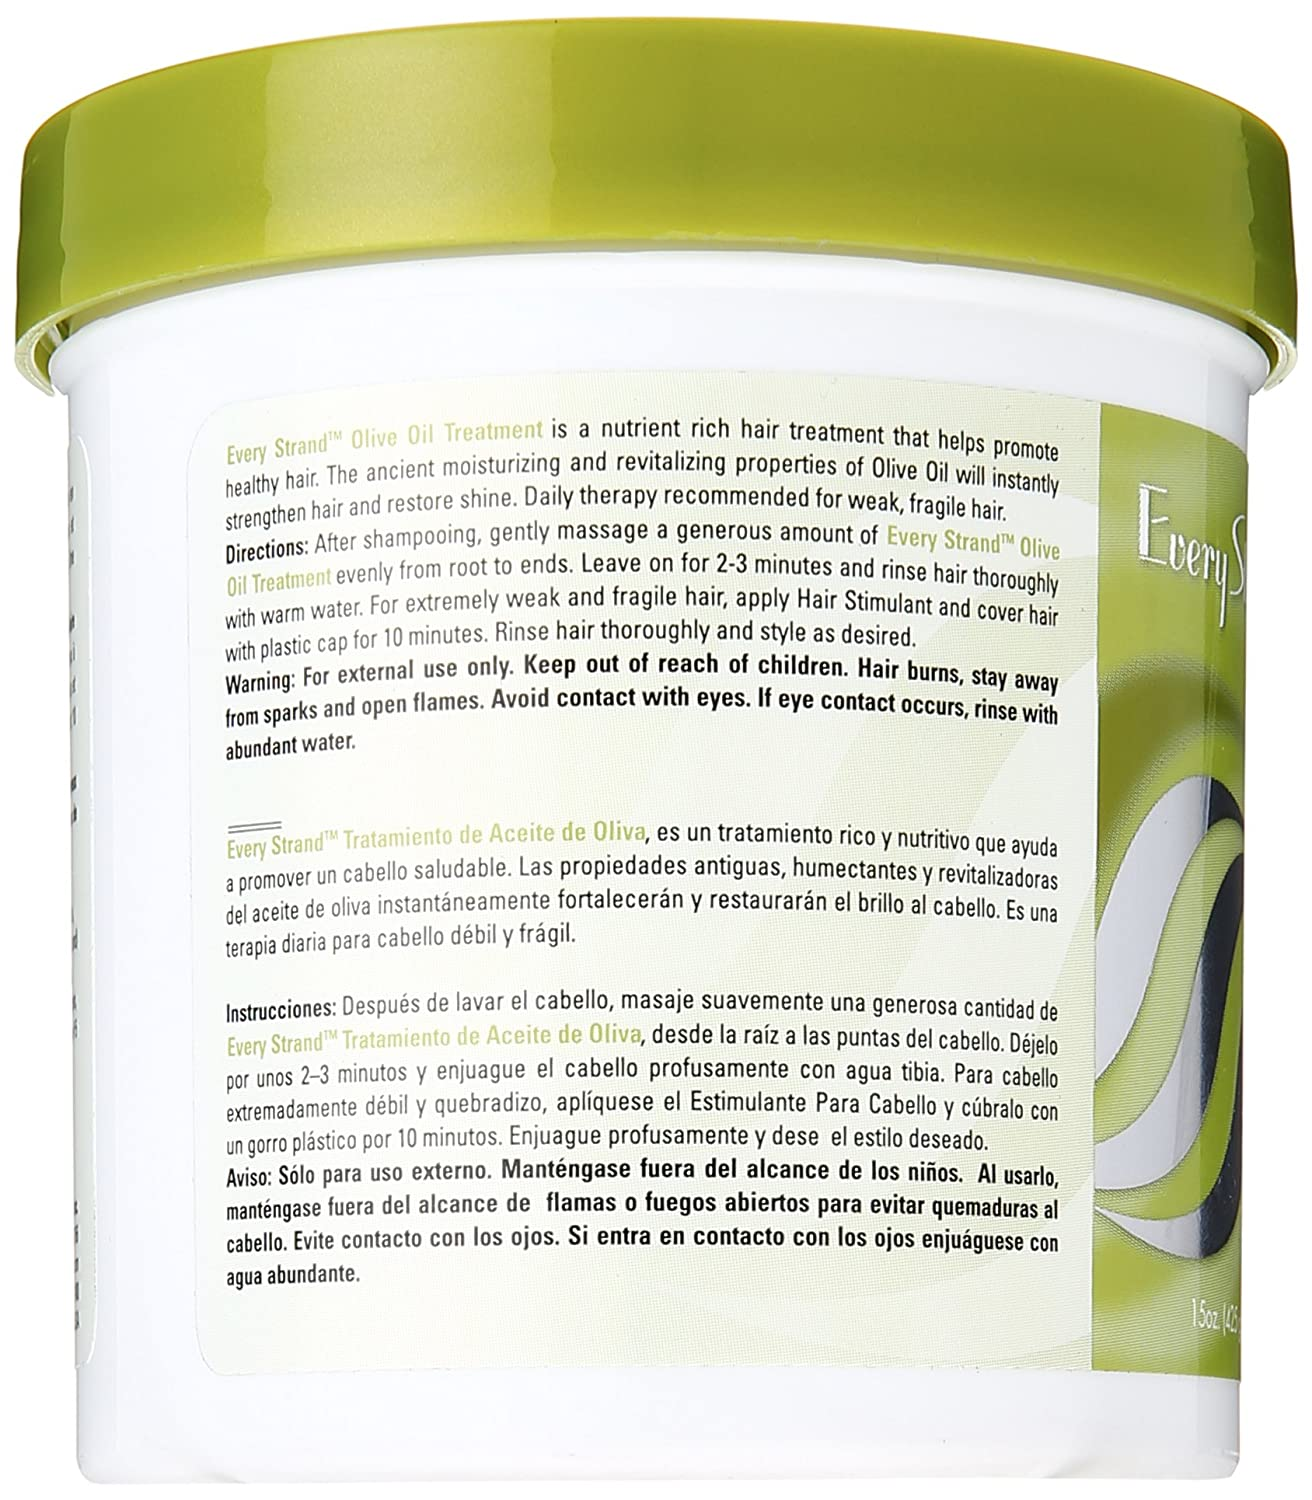 Amazon.com : Every Strand Olive Oil Treatment, 15 Ounce : Hair And Scalp Treatments : Beauty